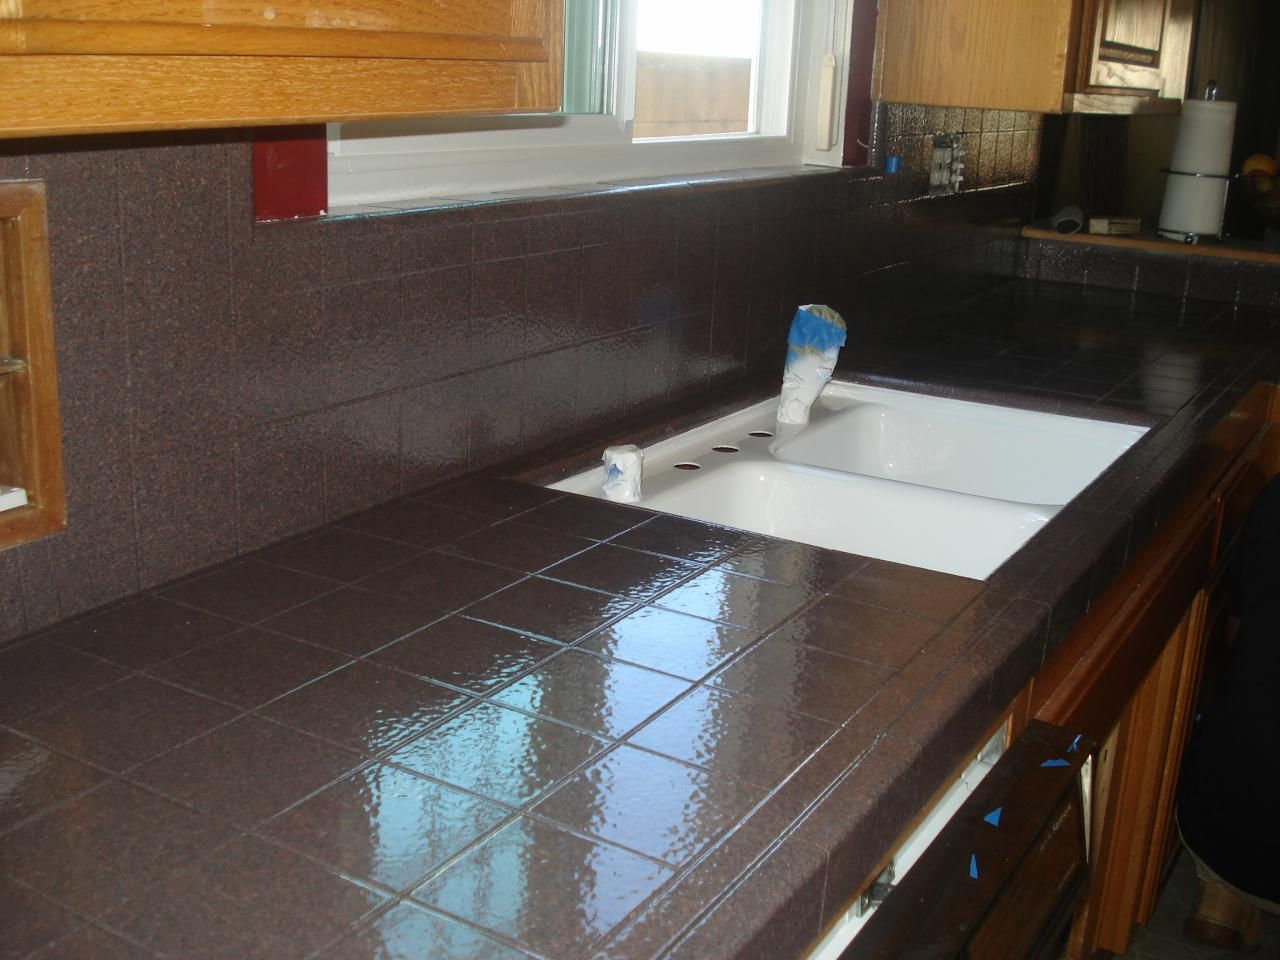 Pkb reglazing tile kitchen countertop reglazed balmorai red pkb reglazing tile kitchen countertop reglazed balmorai red speckled dailygadgetfo Gallery